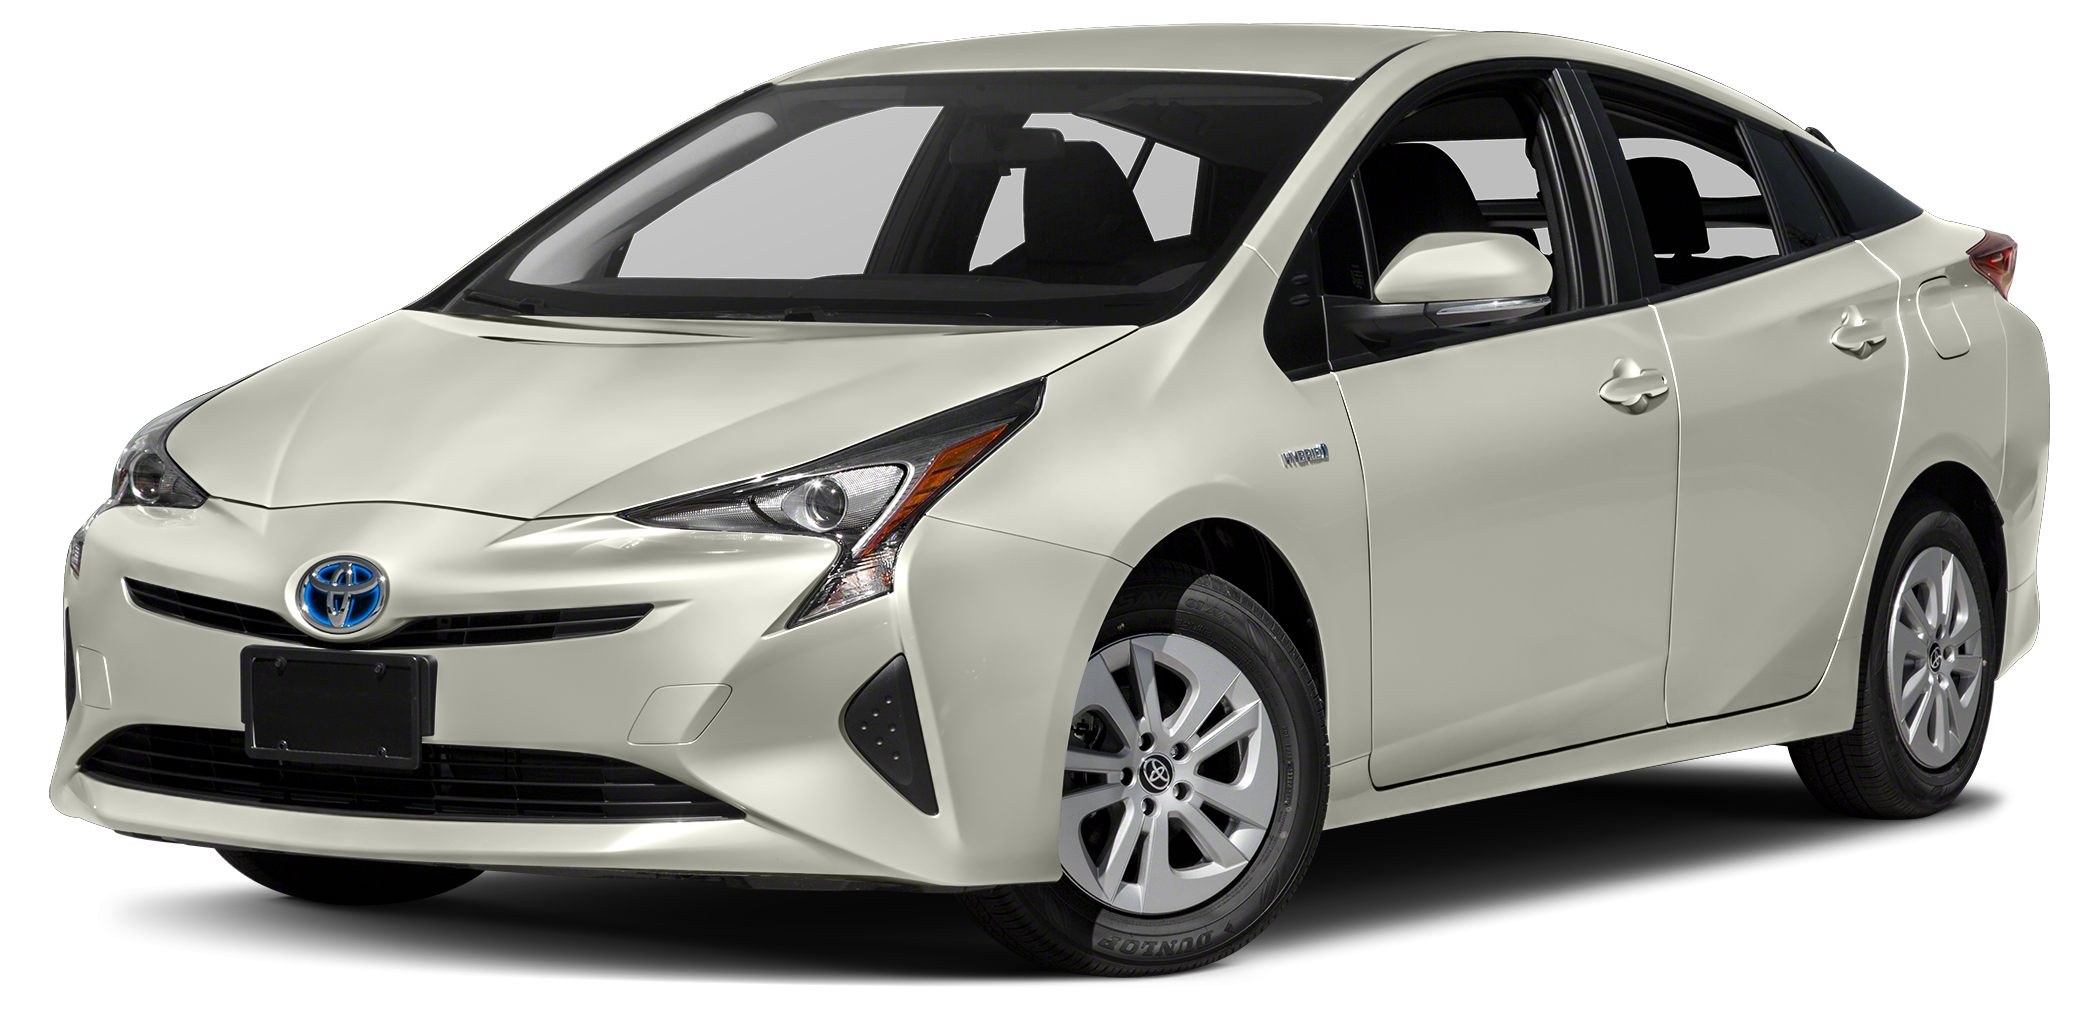 2017 Toyota Prius Two EPA 50 MPG Hwy54 MPG City BLIZZARD PEARL exterior and BLACK interior Two